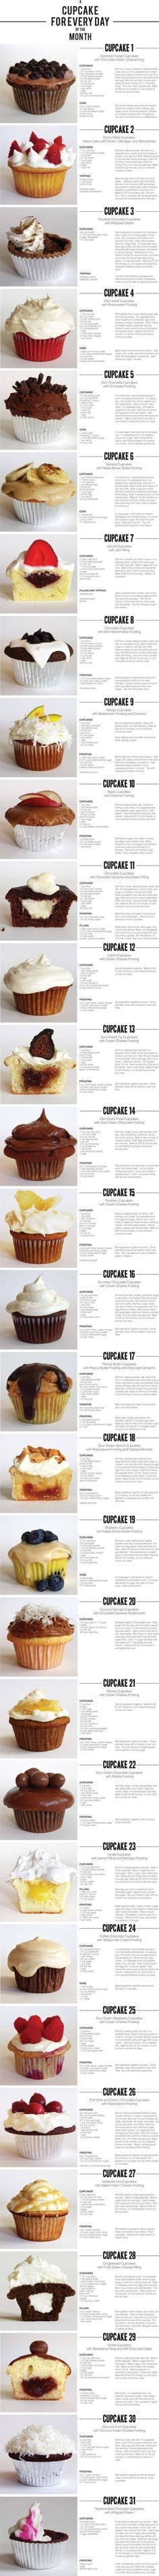 31 cupcakes!! need to try this! Great cupcake ideas! #cupcakes #cupcakeaday